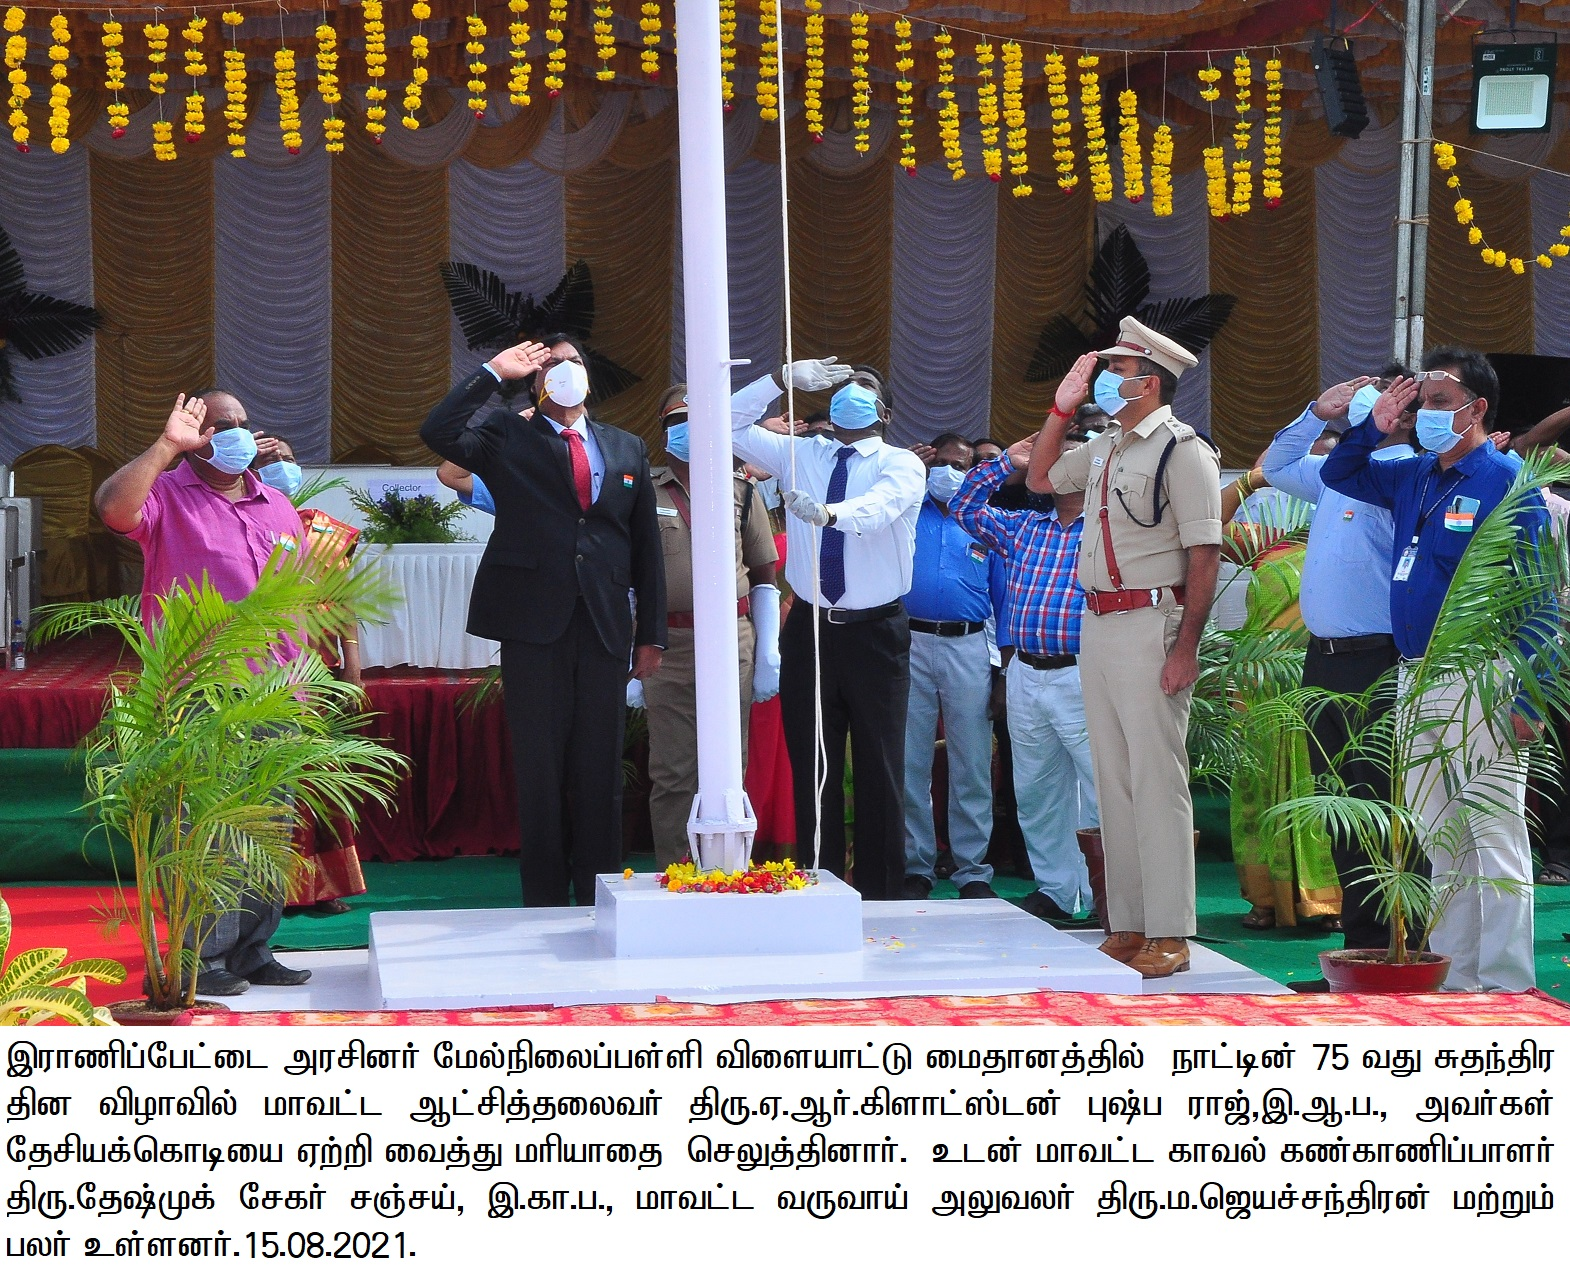 75th Independence Day Celebration 15/08/2021